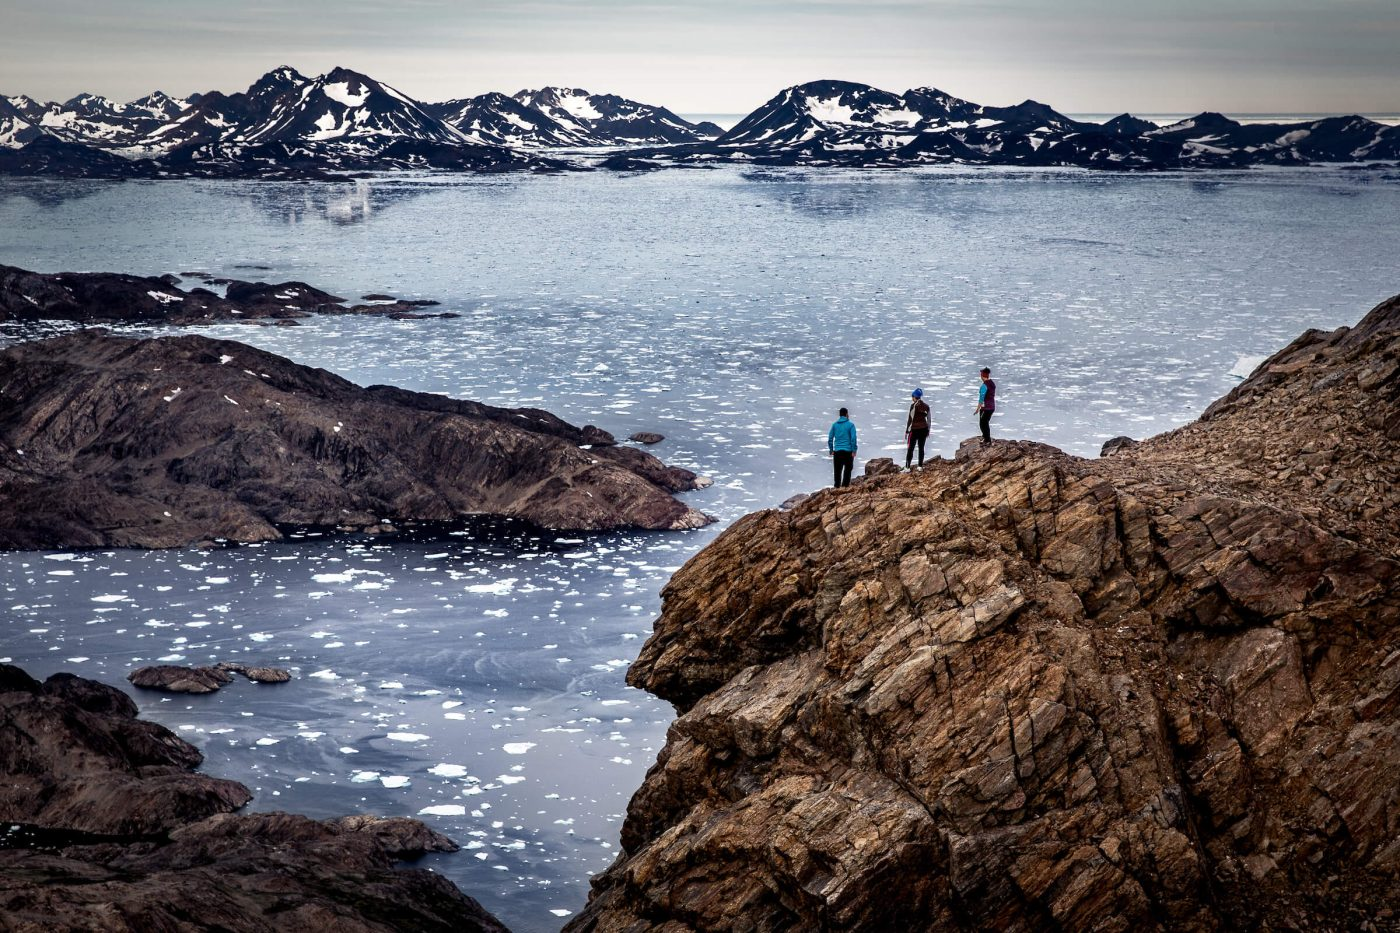 Hikers on Sømandsfjeldet near Tasiilaq in East Greenland. Photo by Mads Pihl, Visit Greenland